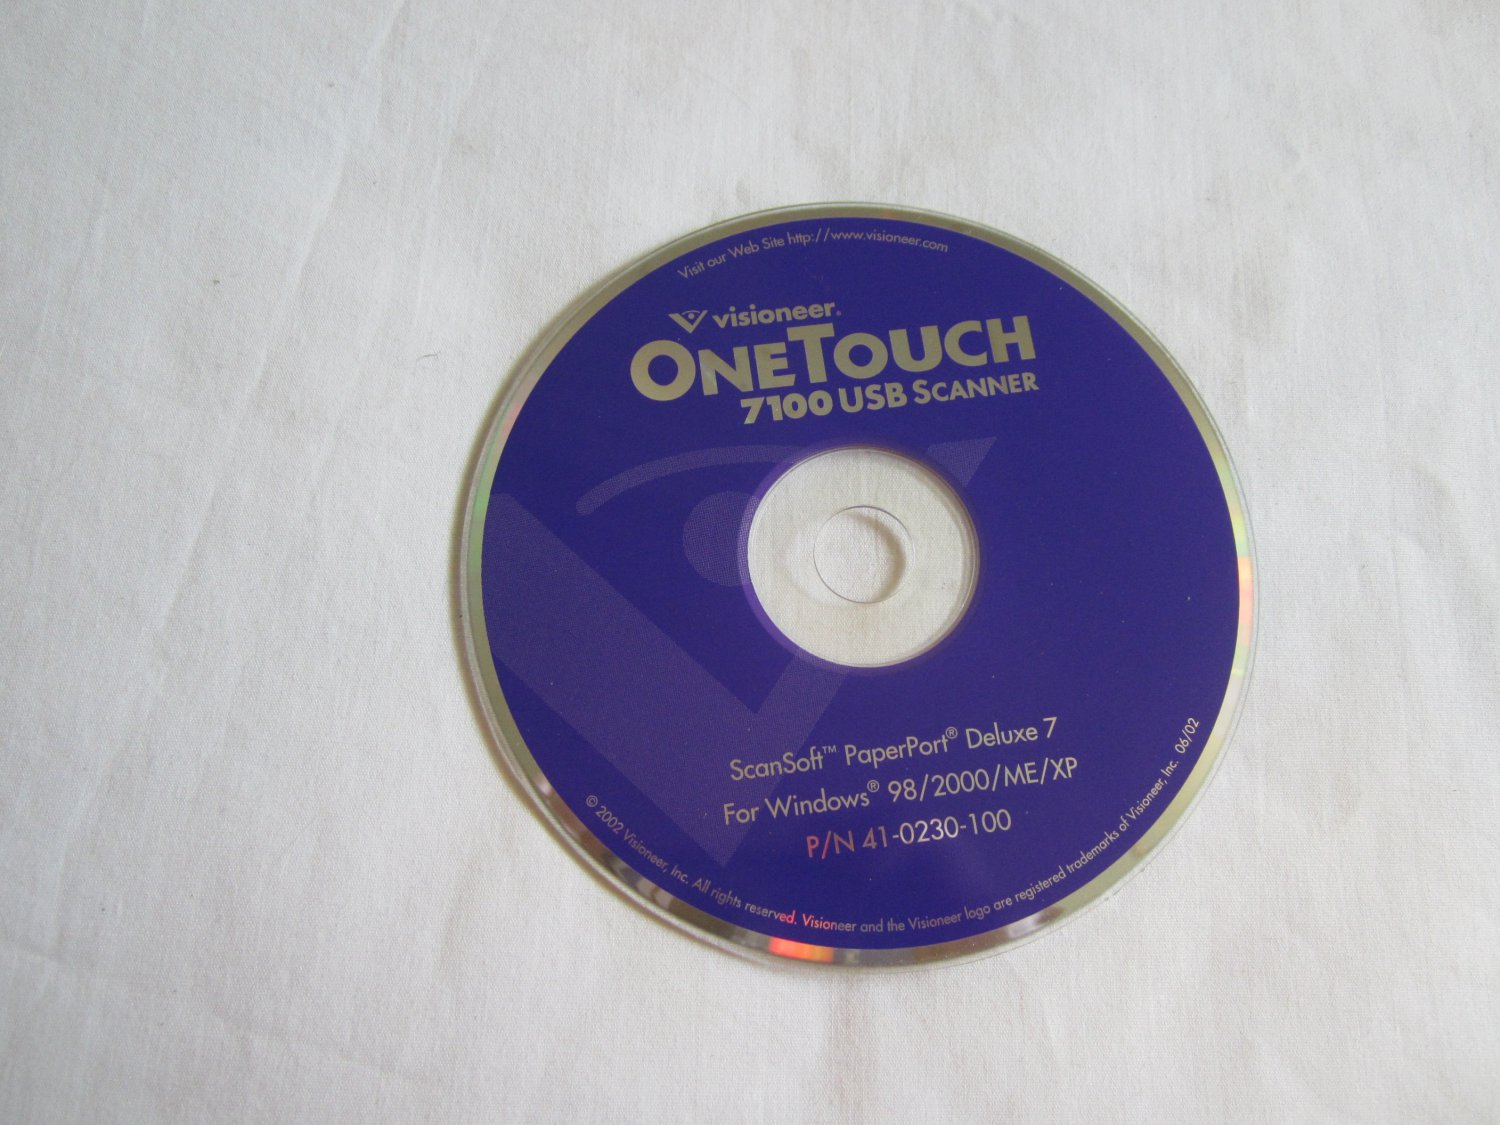 Visioneer One Touch 7100 USB Scanner CD ROM ScanSoft PaperPort Deluxe 7